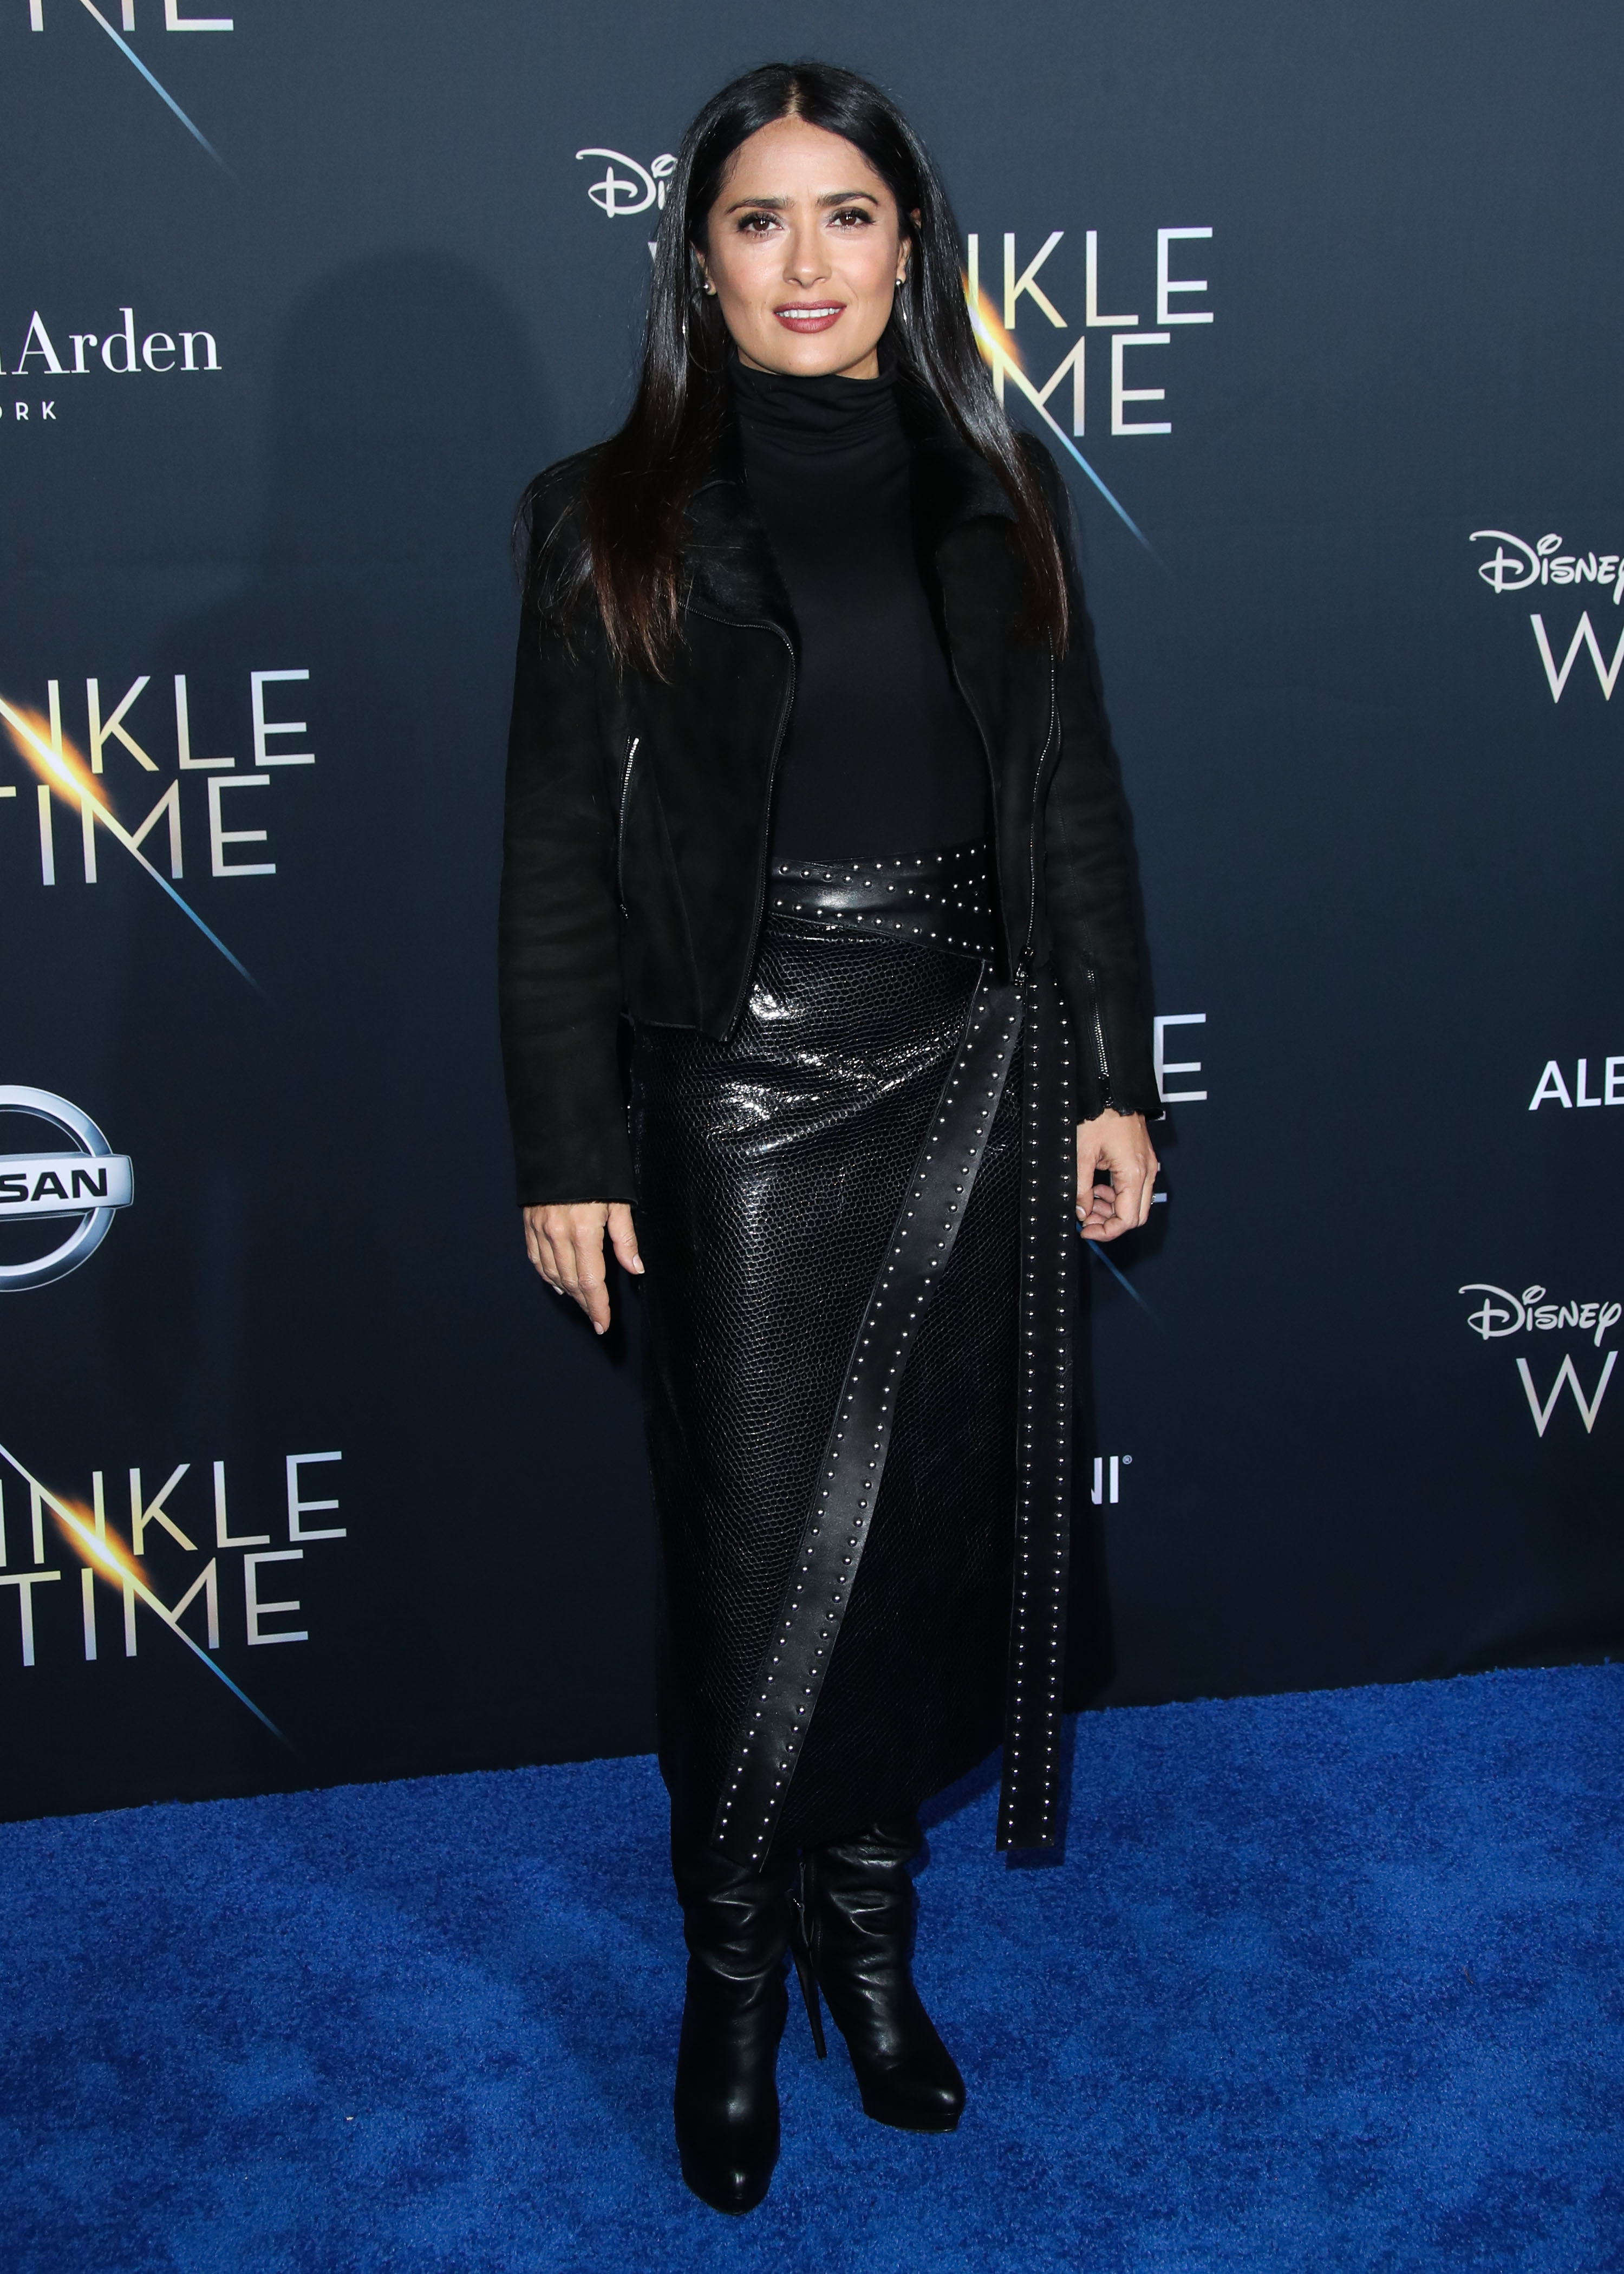 HOLLYWOOD, LOS ANGELES, CA, USA - FEBRUARY 26: World Premiere Of Disney's 'A Wrinkle In Time' held at the El Capitan Theatre on February 26, 2018 in Hollywood, Los Angeles, California, United States. (Photo by Xavier Collin/Image Press Agency/Splash News) <P> Pictured: Salma Hayek <B>Ref: SPL1664659  260218  </B><BR/> Picture by: Xavier Collin/IPA/Splash News<BR/> </P><P> <B>Splash News and Pictures</B><BR/> Los Angeles:310-821-2666<BR/> New York:212-619-2666<BR/> London:870-934-2666<BR/> <span id=